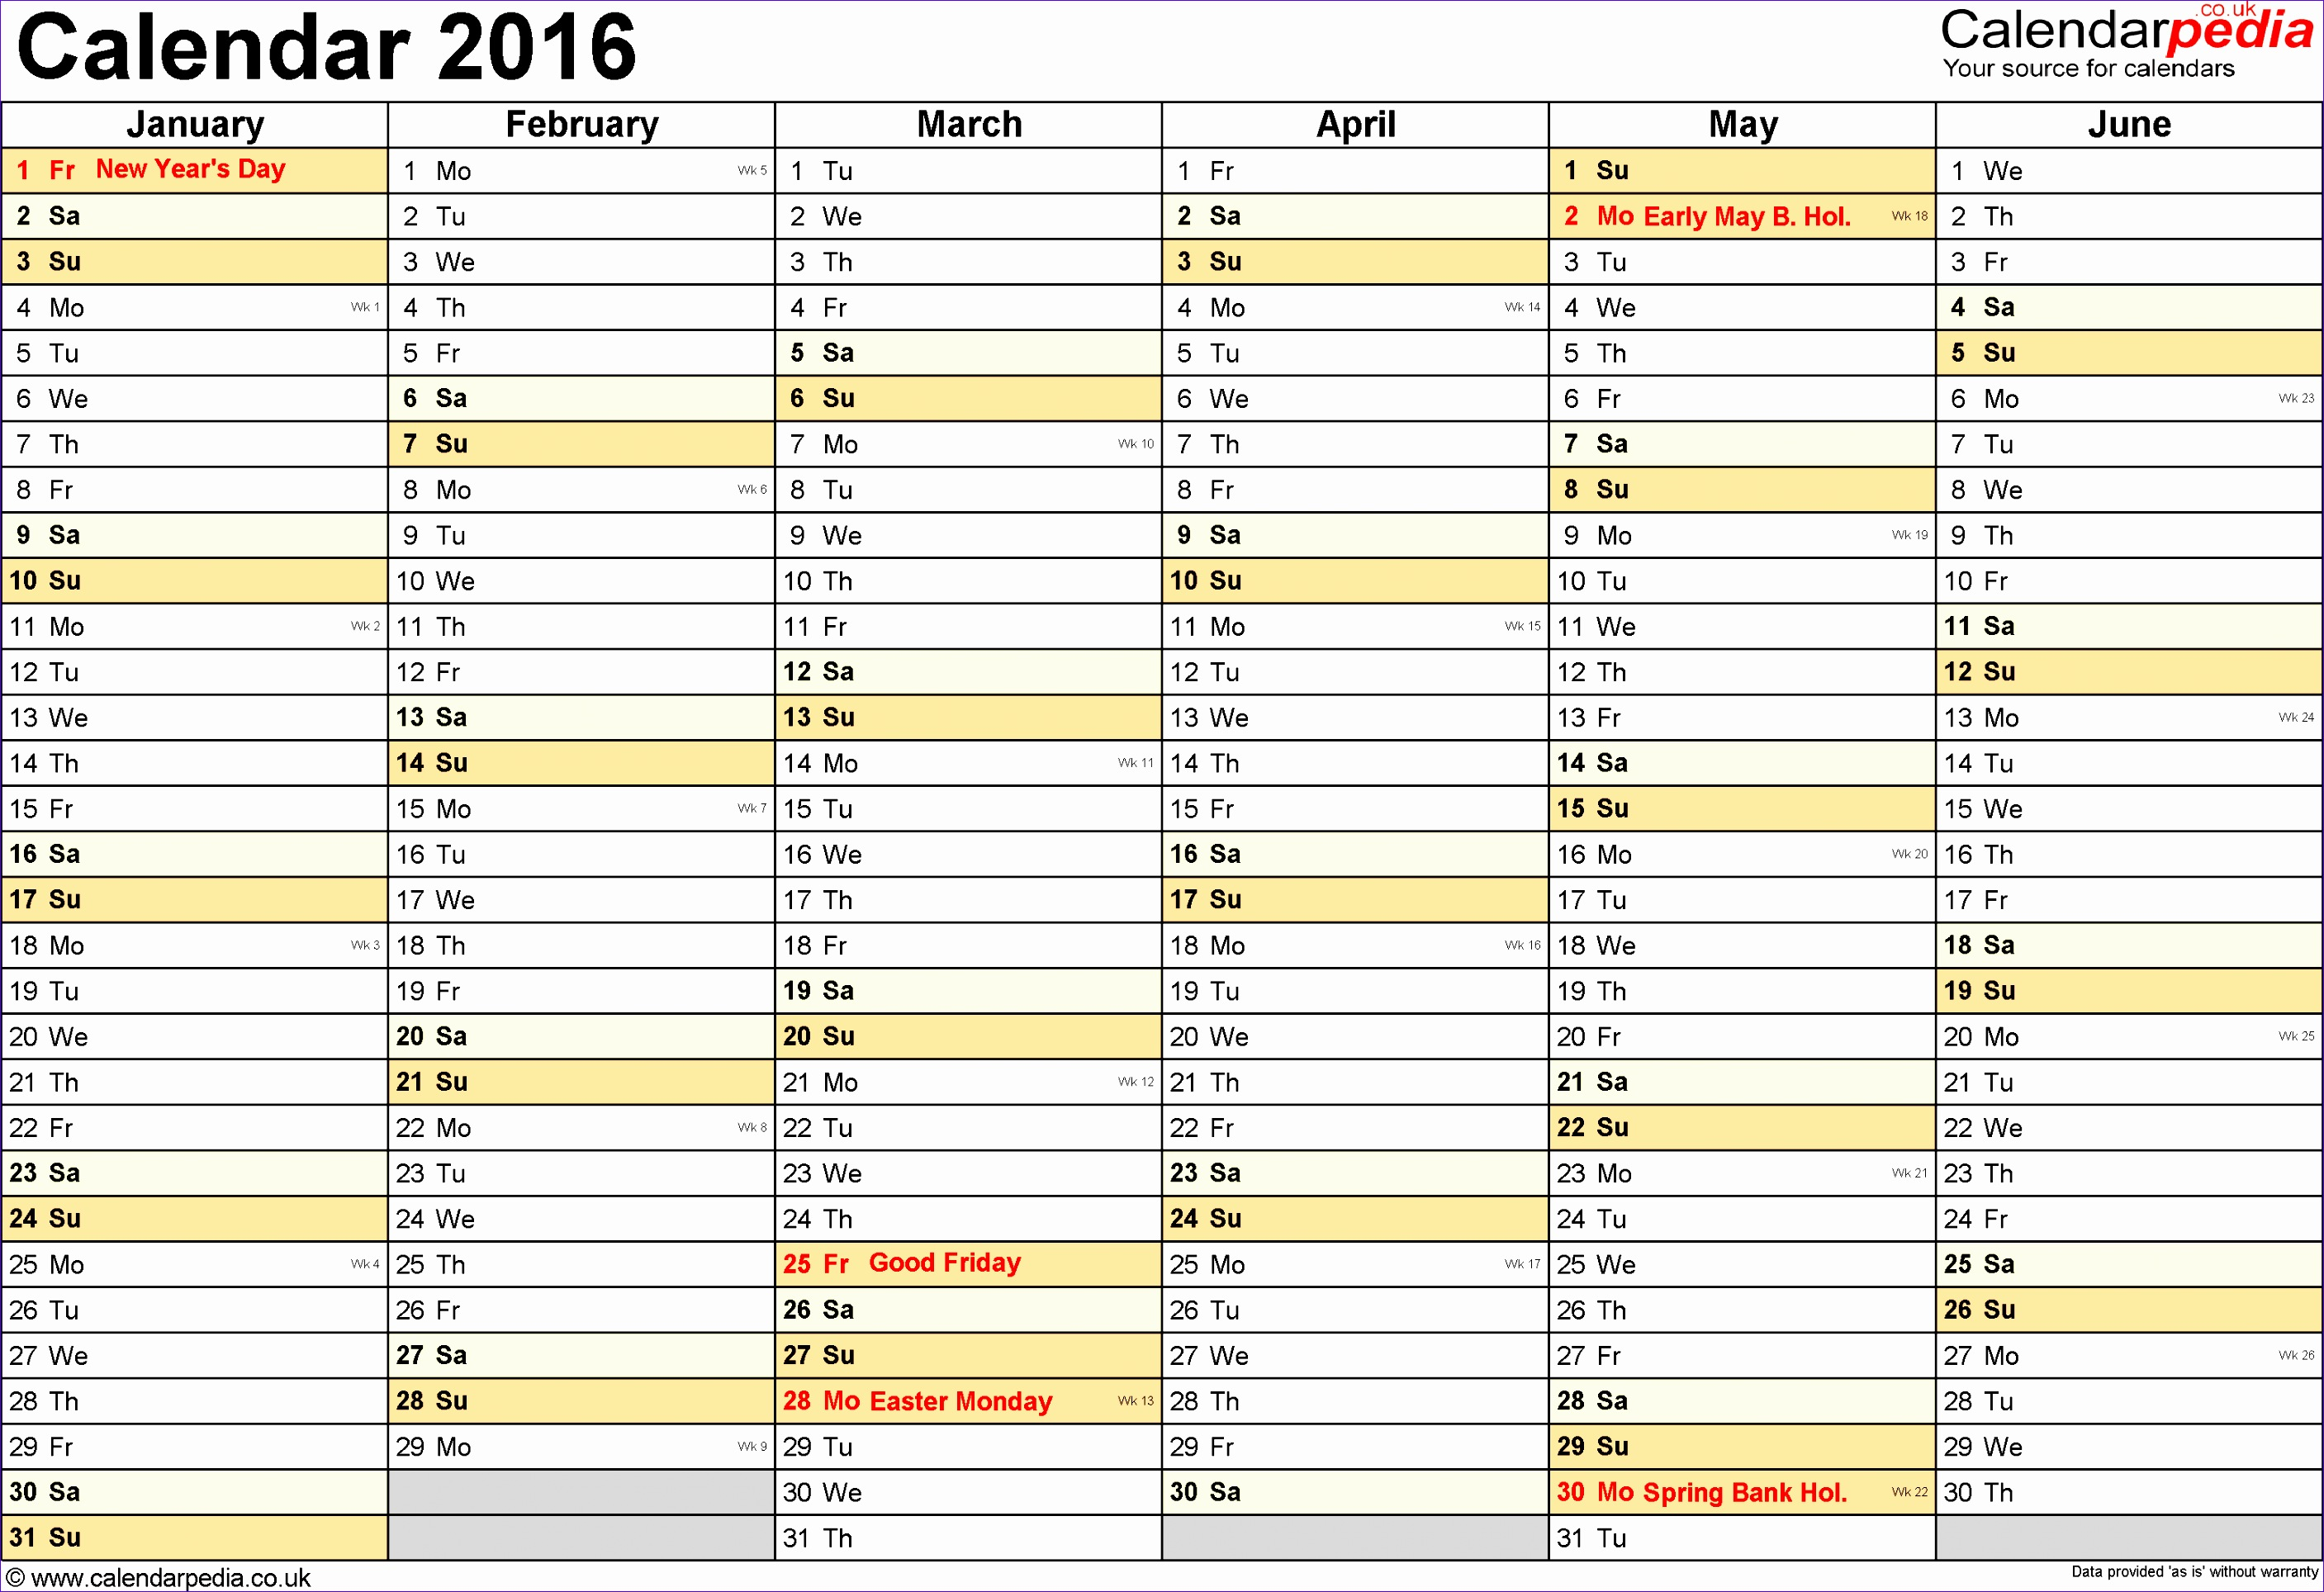 Work Schedule Template Excel 2010 Ncabk Awesome Excel Calendar 2016 Uk 16 Printable Templates Xls Xlsx Free